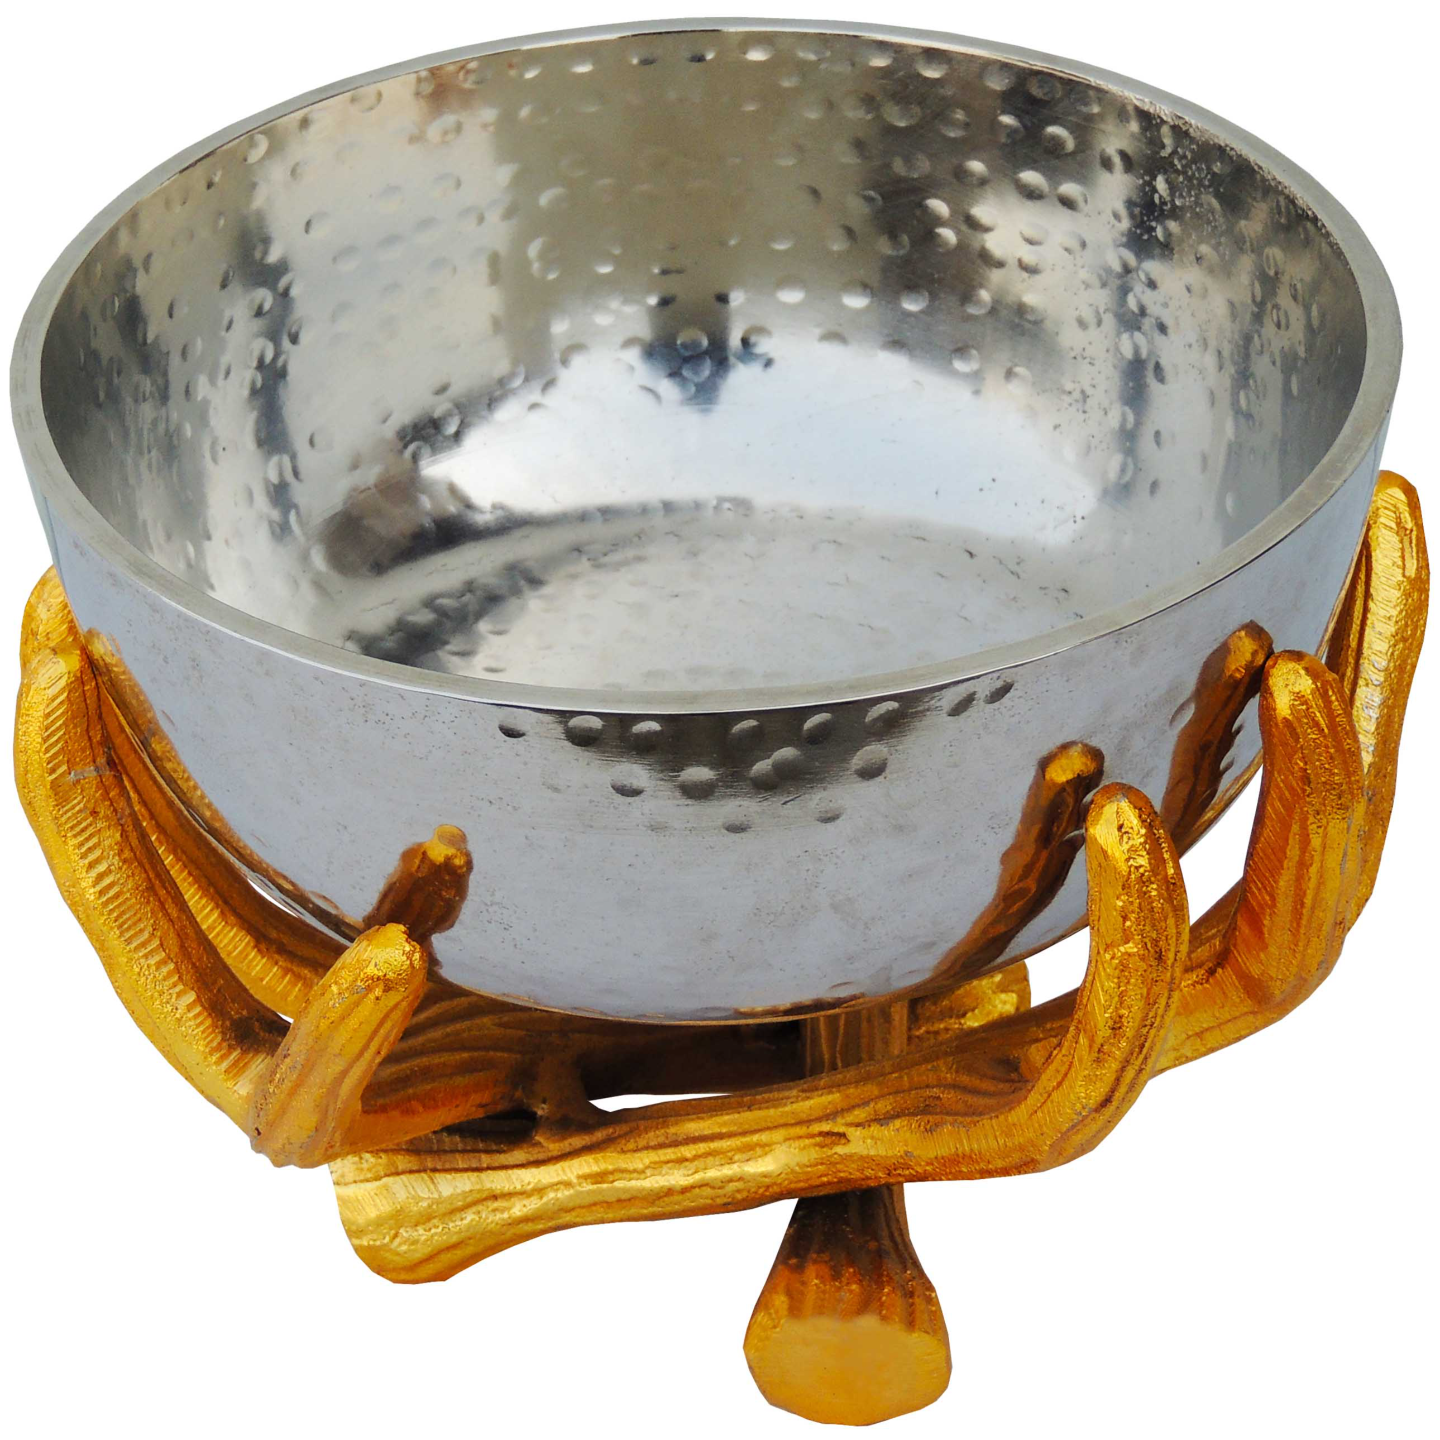 Decorative Panja Shape Bowl, Height 6.5 Inch (A3192/9)